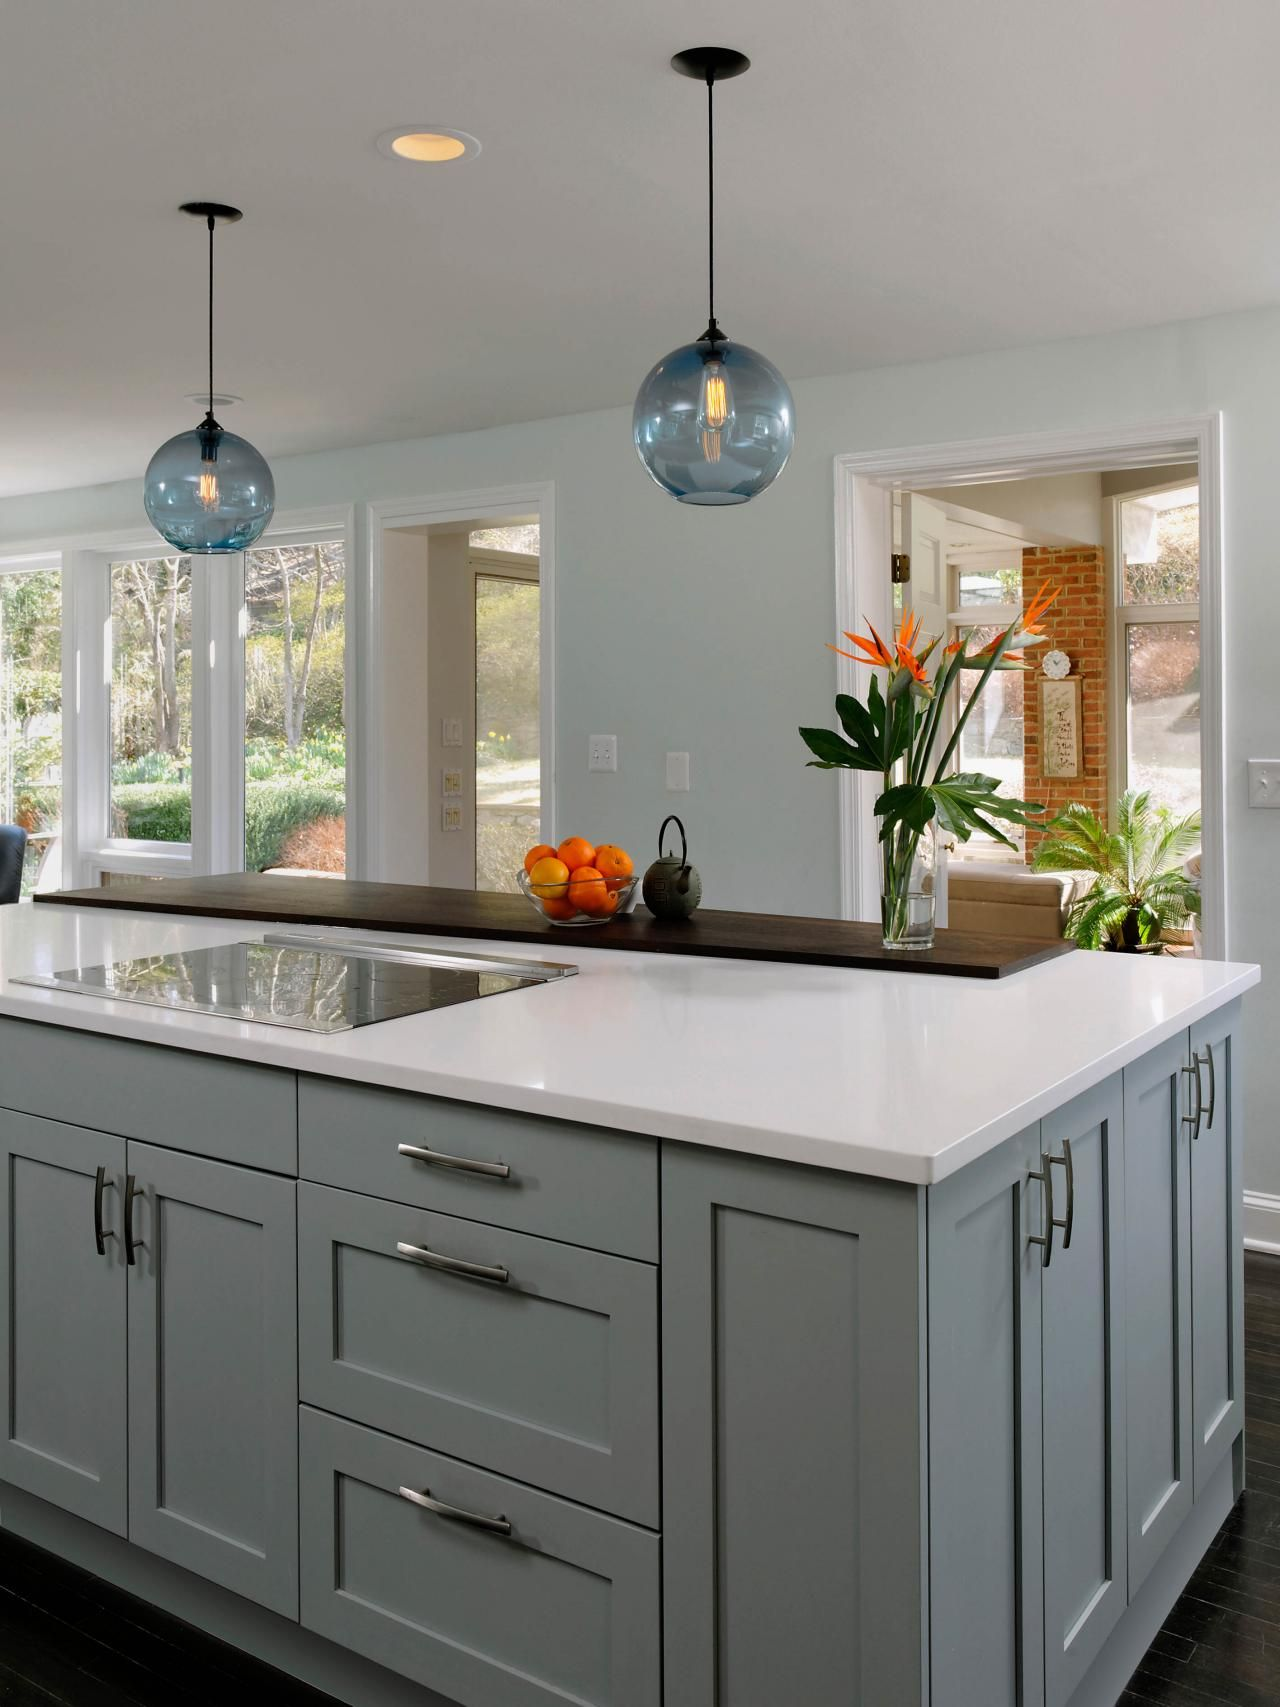 Best Color Ideas For Painting Kitchen Cabinets Hgtv Pictures 400 x 300